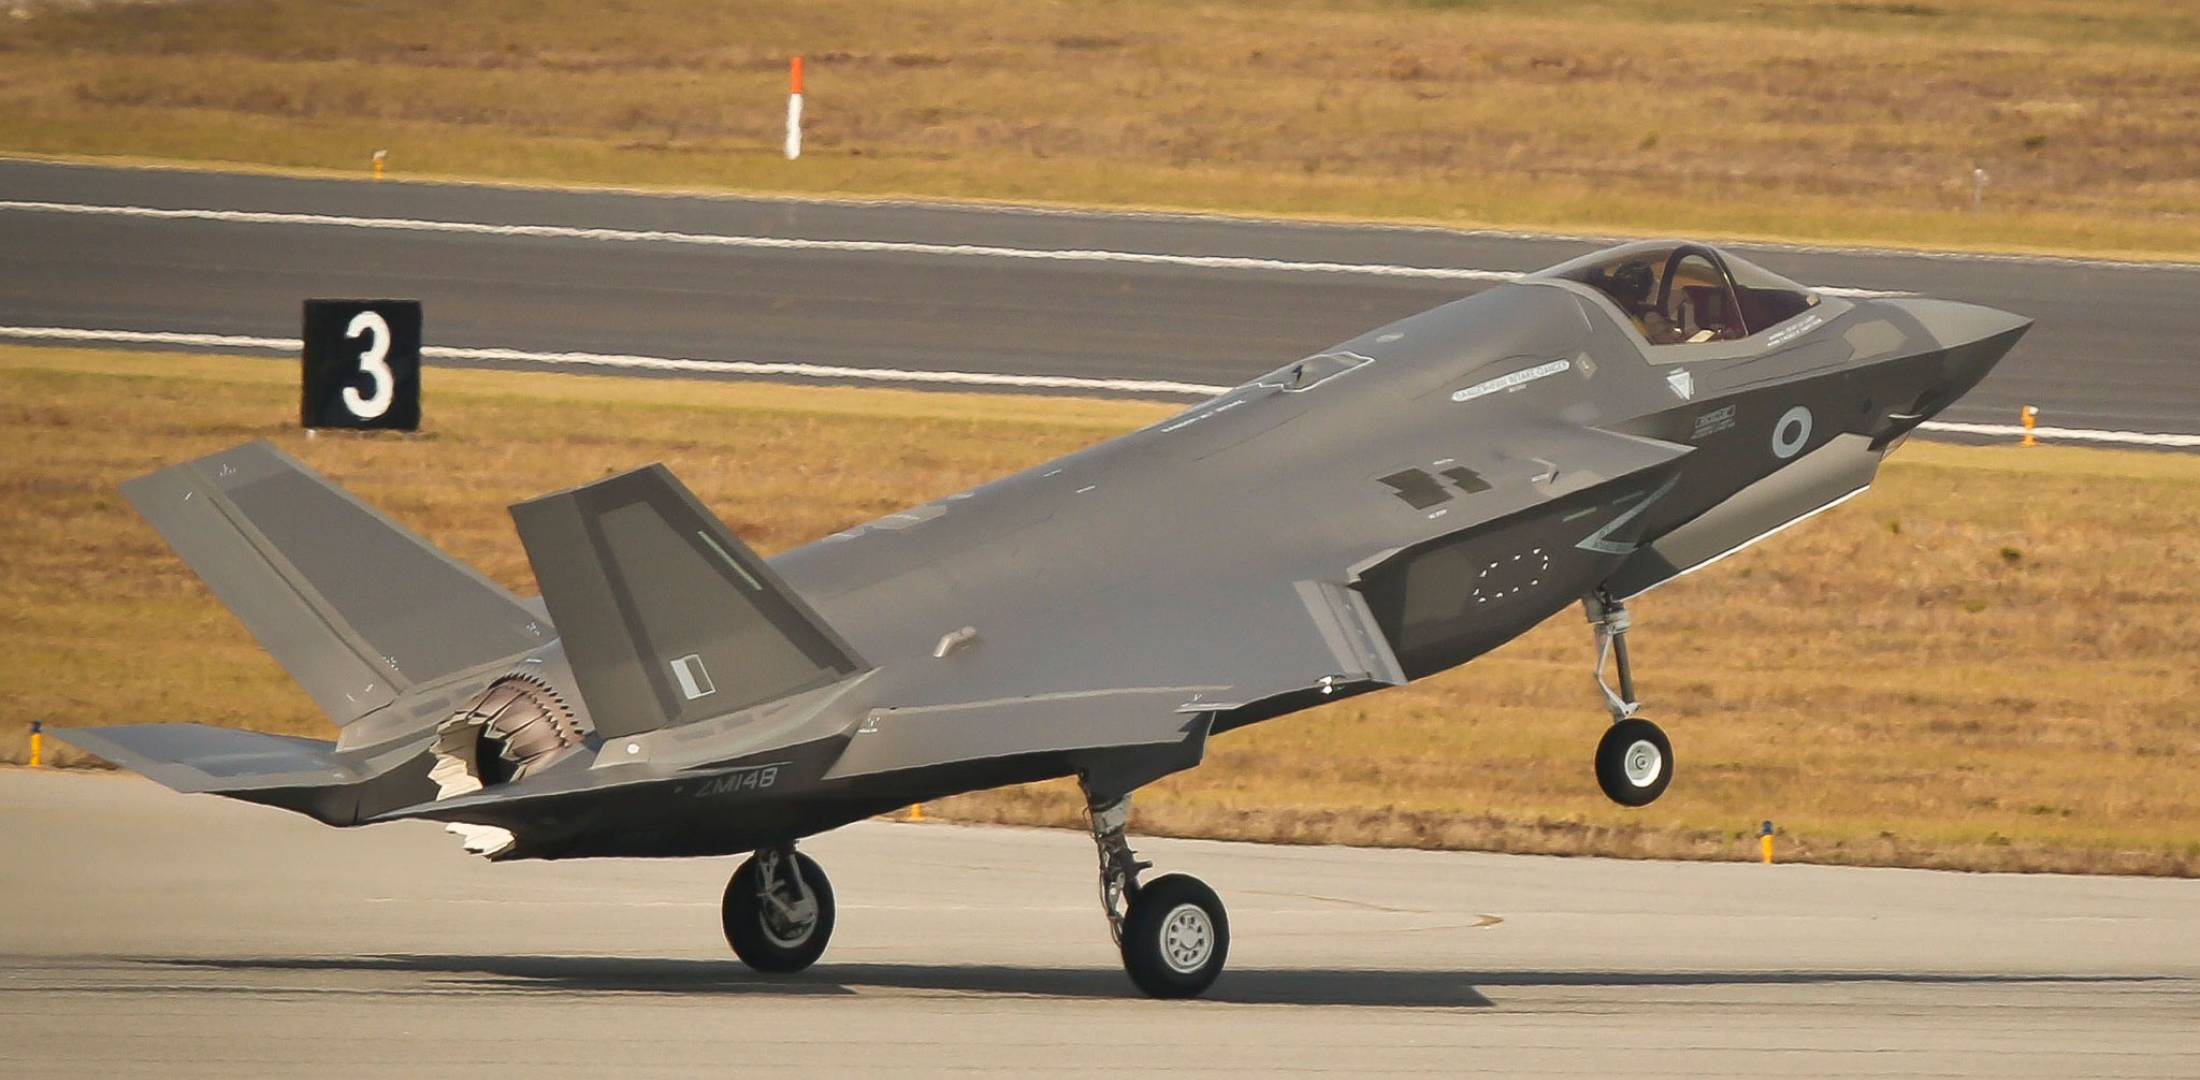 F-35B on runway